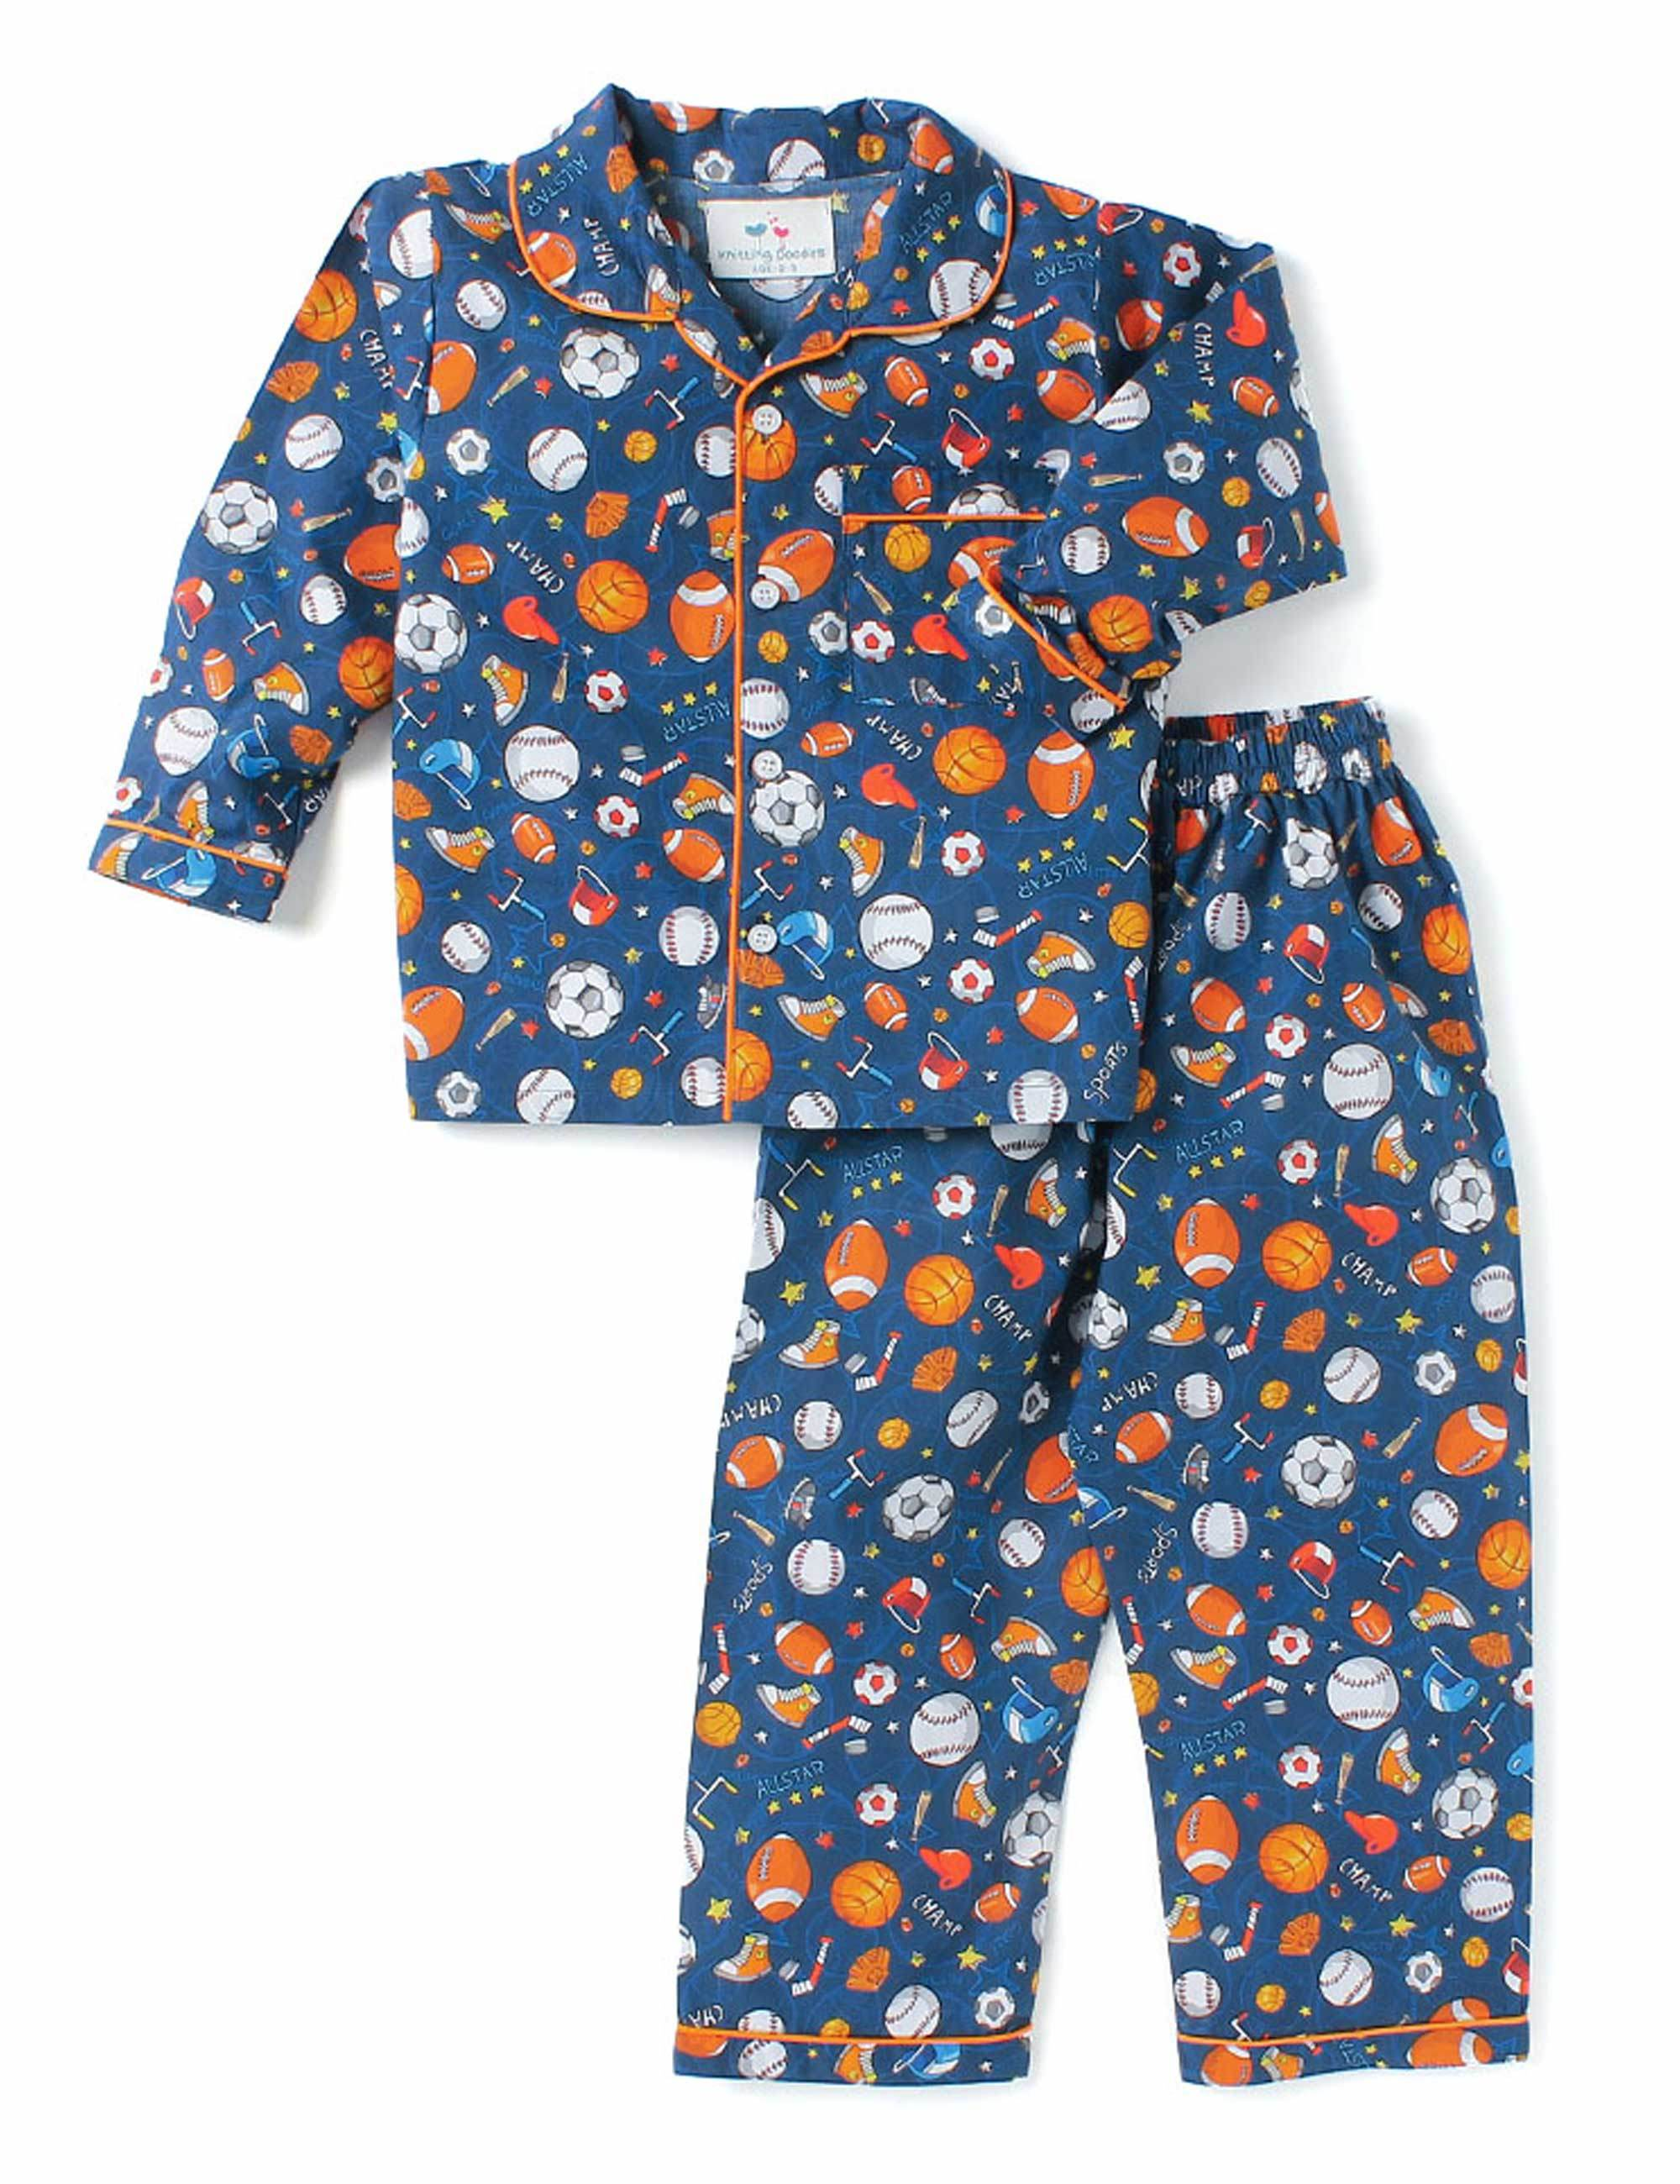 Outdoor Sports Print Night Suit for Boys